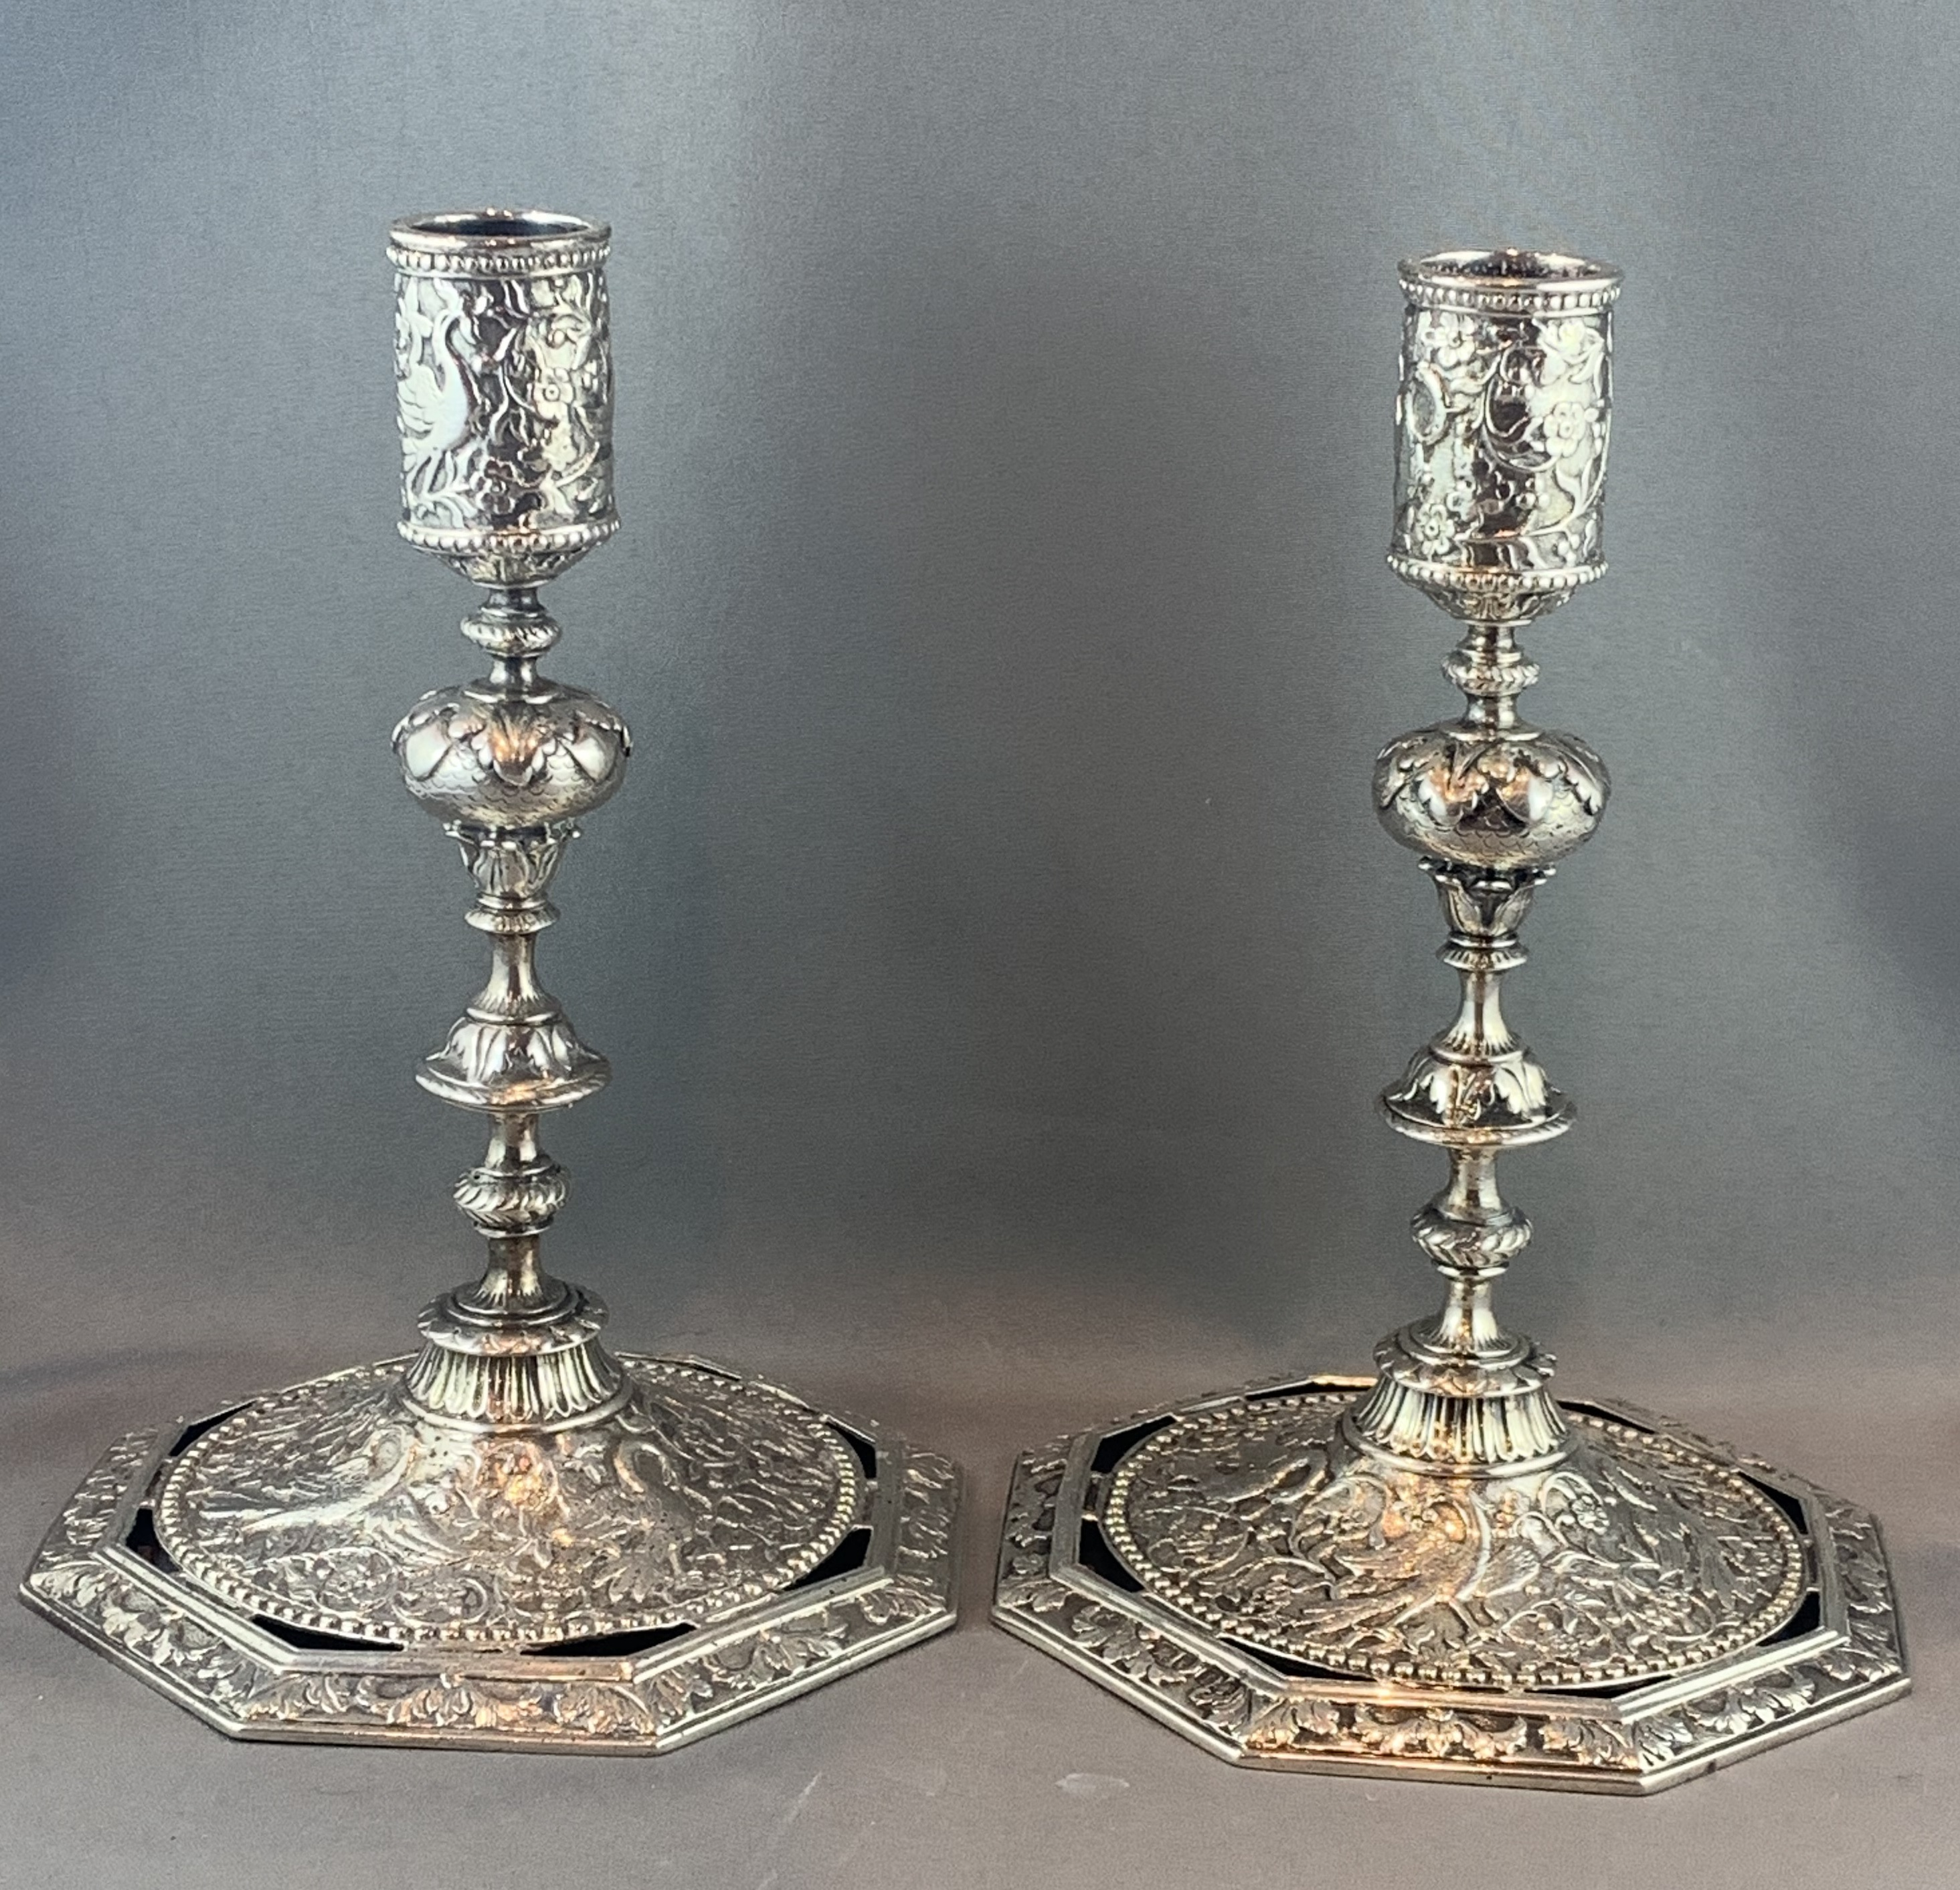 William Beckford Candlesticks